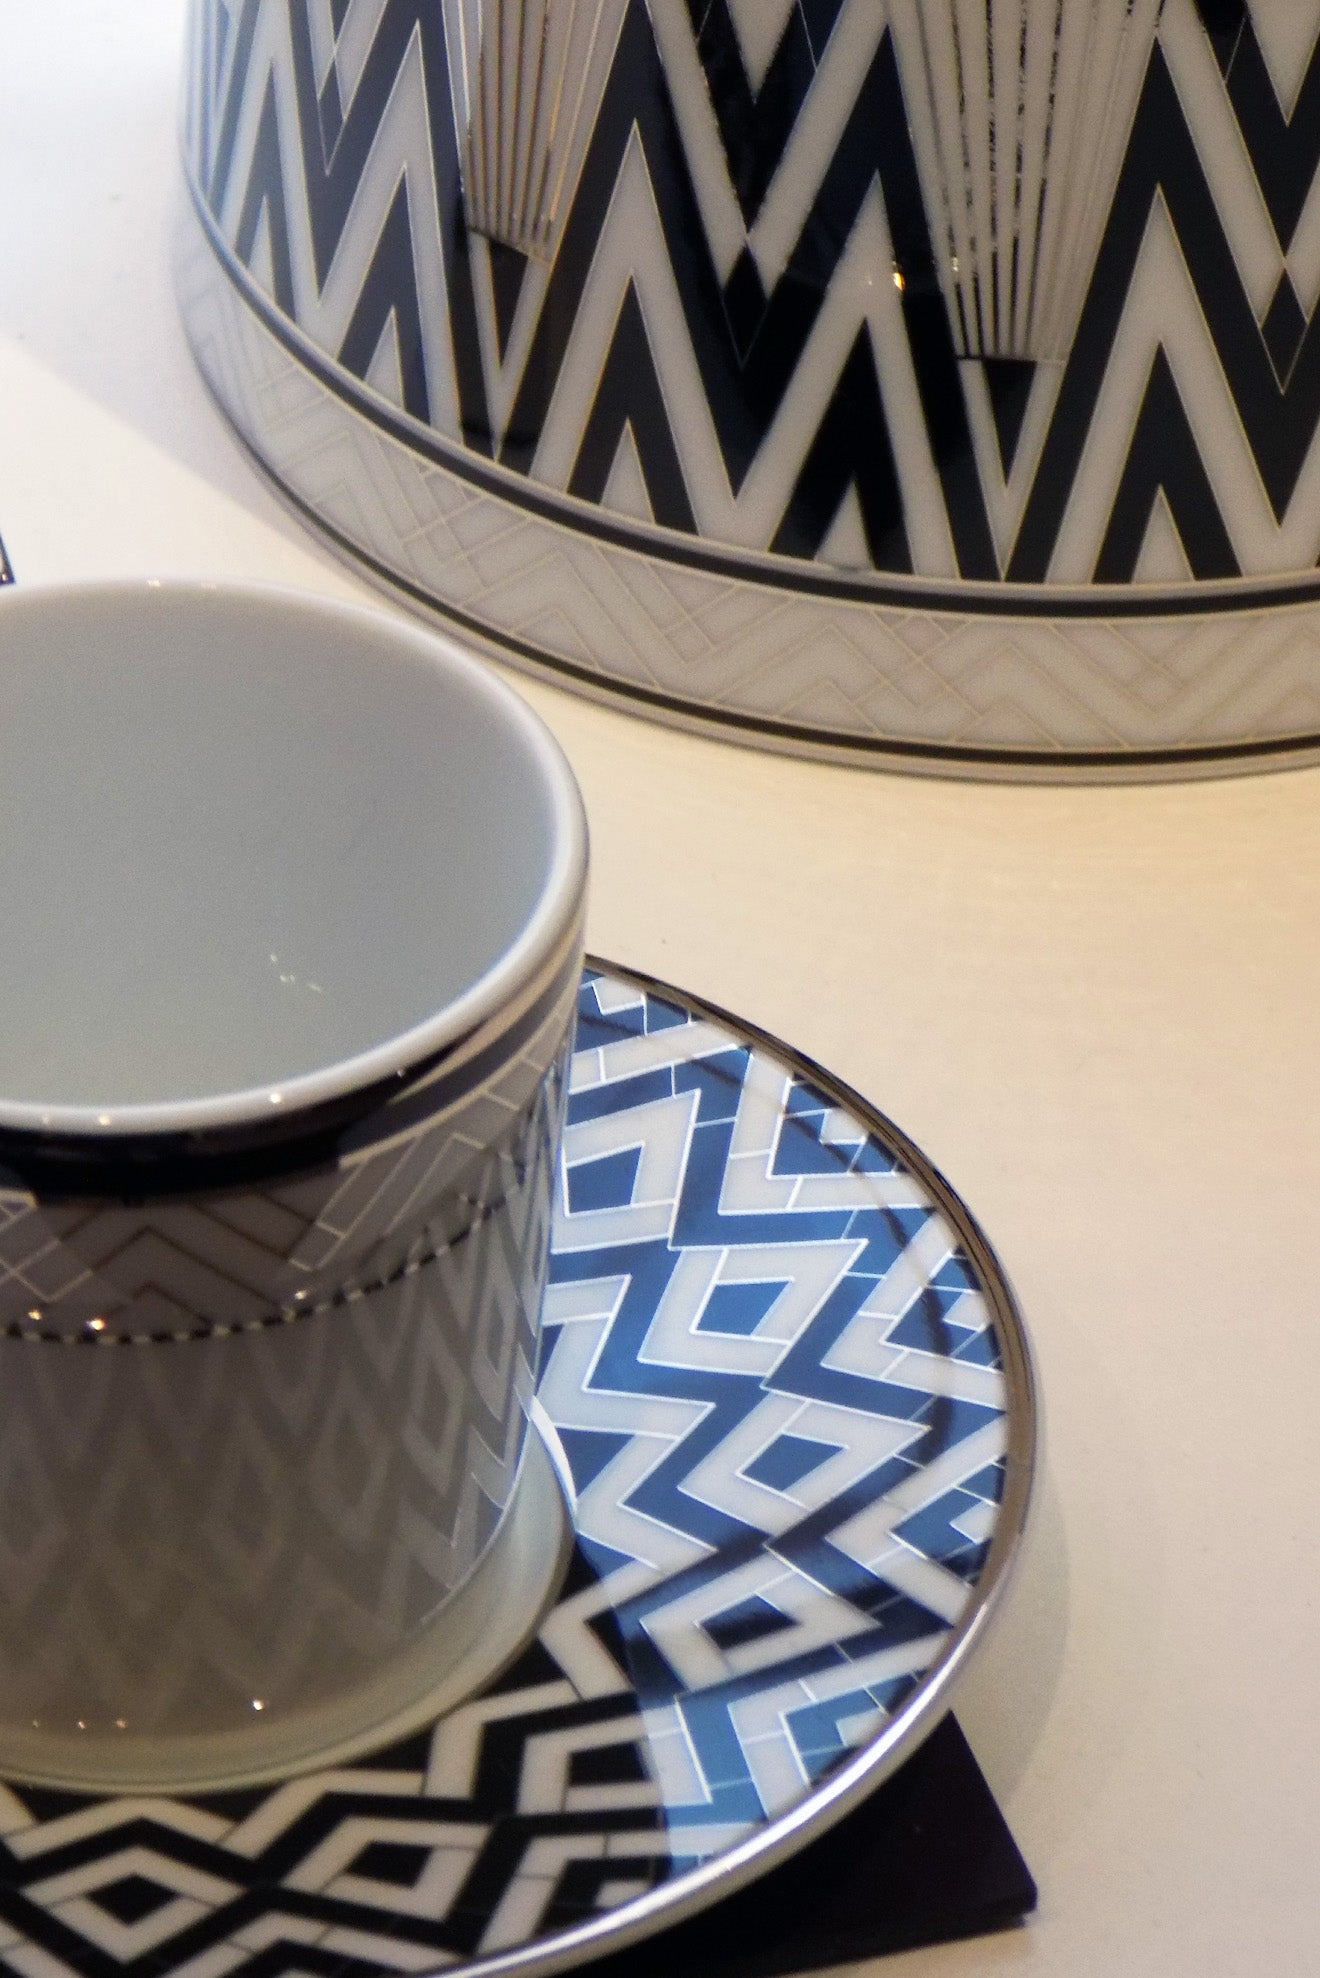 Art Deco styled teaware with black, white and silver detailing